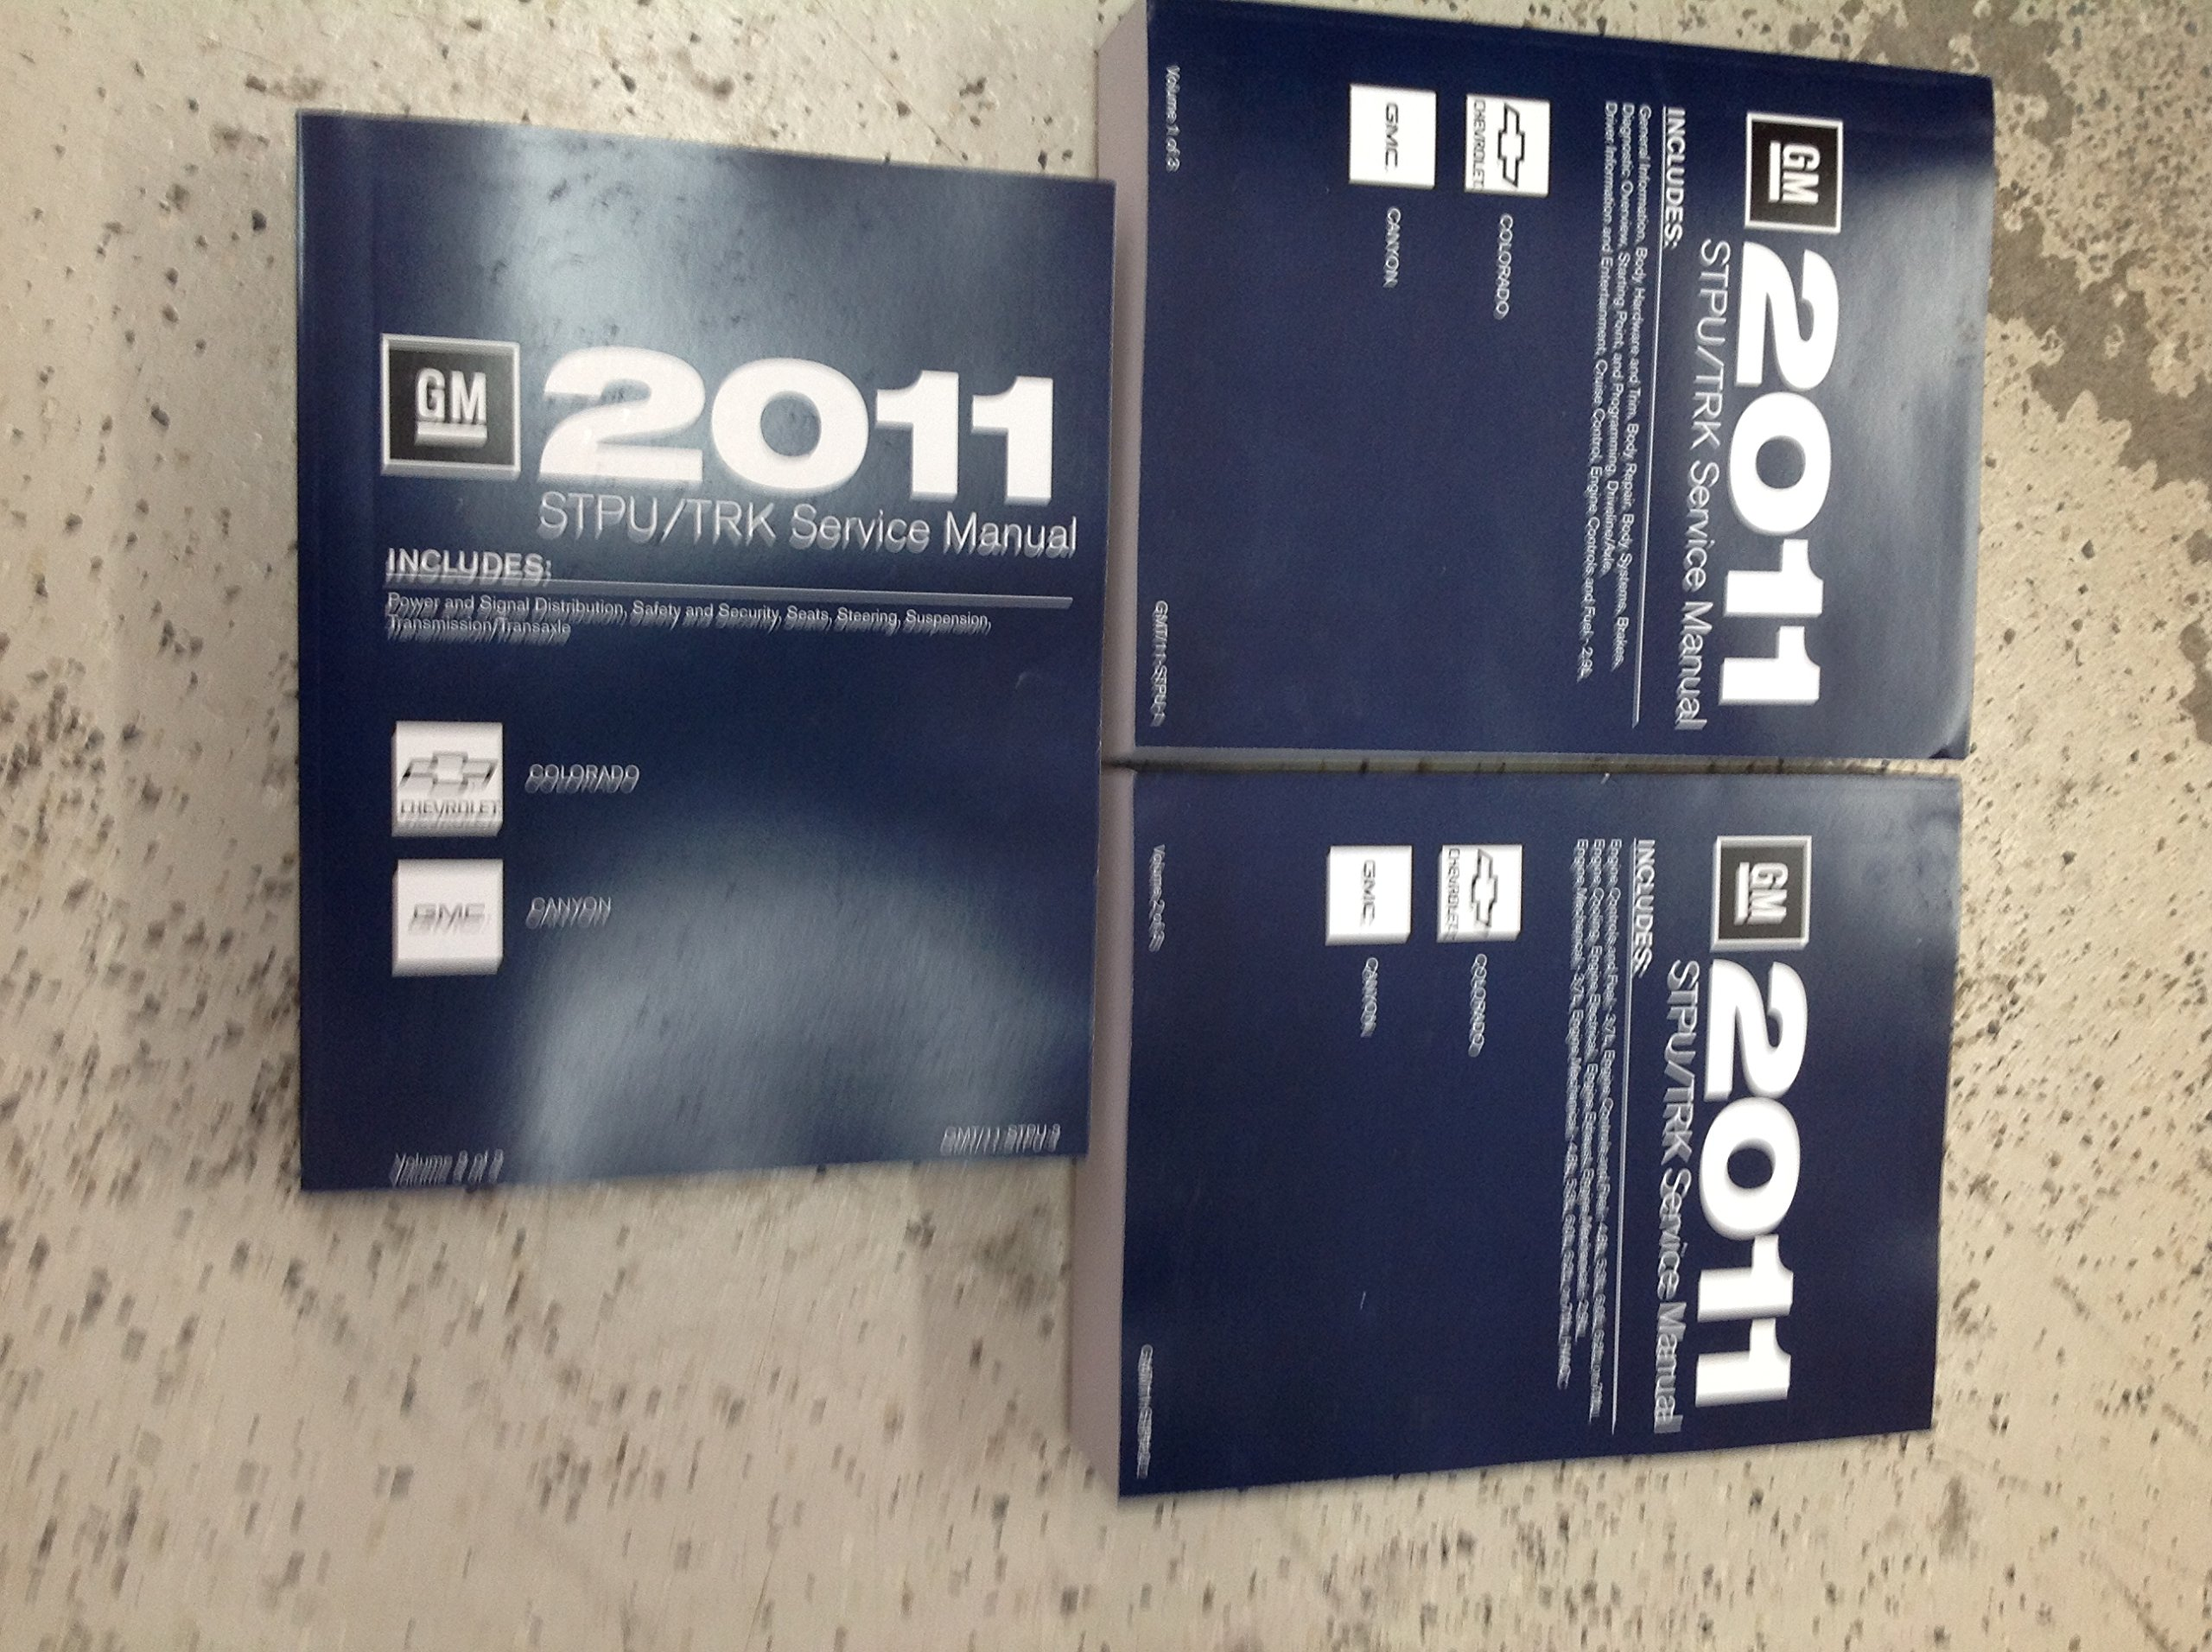 2011 Chevy Colorado Gmc Canyon Truck Service Shop Repair Manual Gm Cruise Control Set New Books